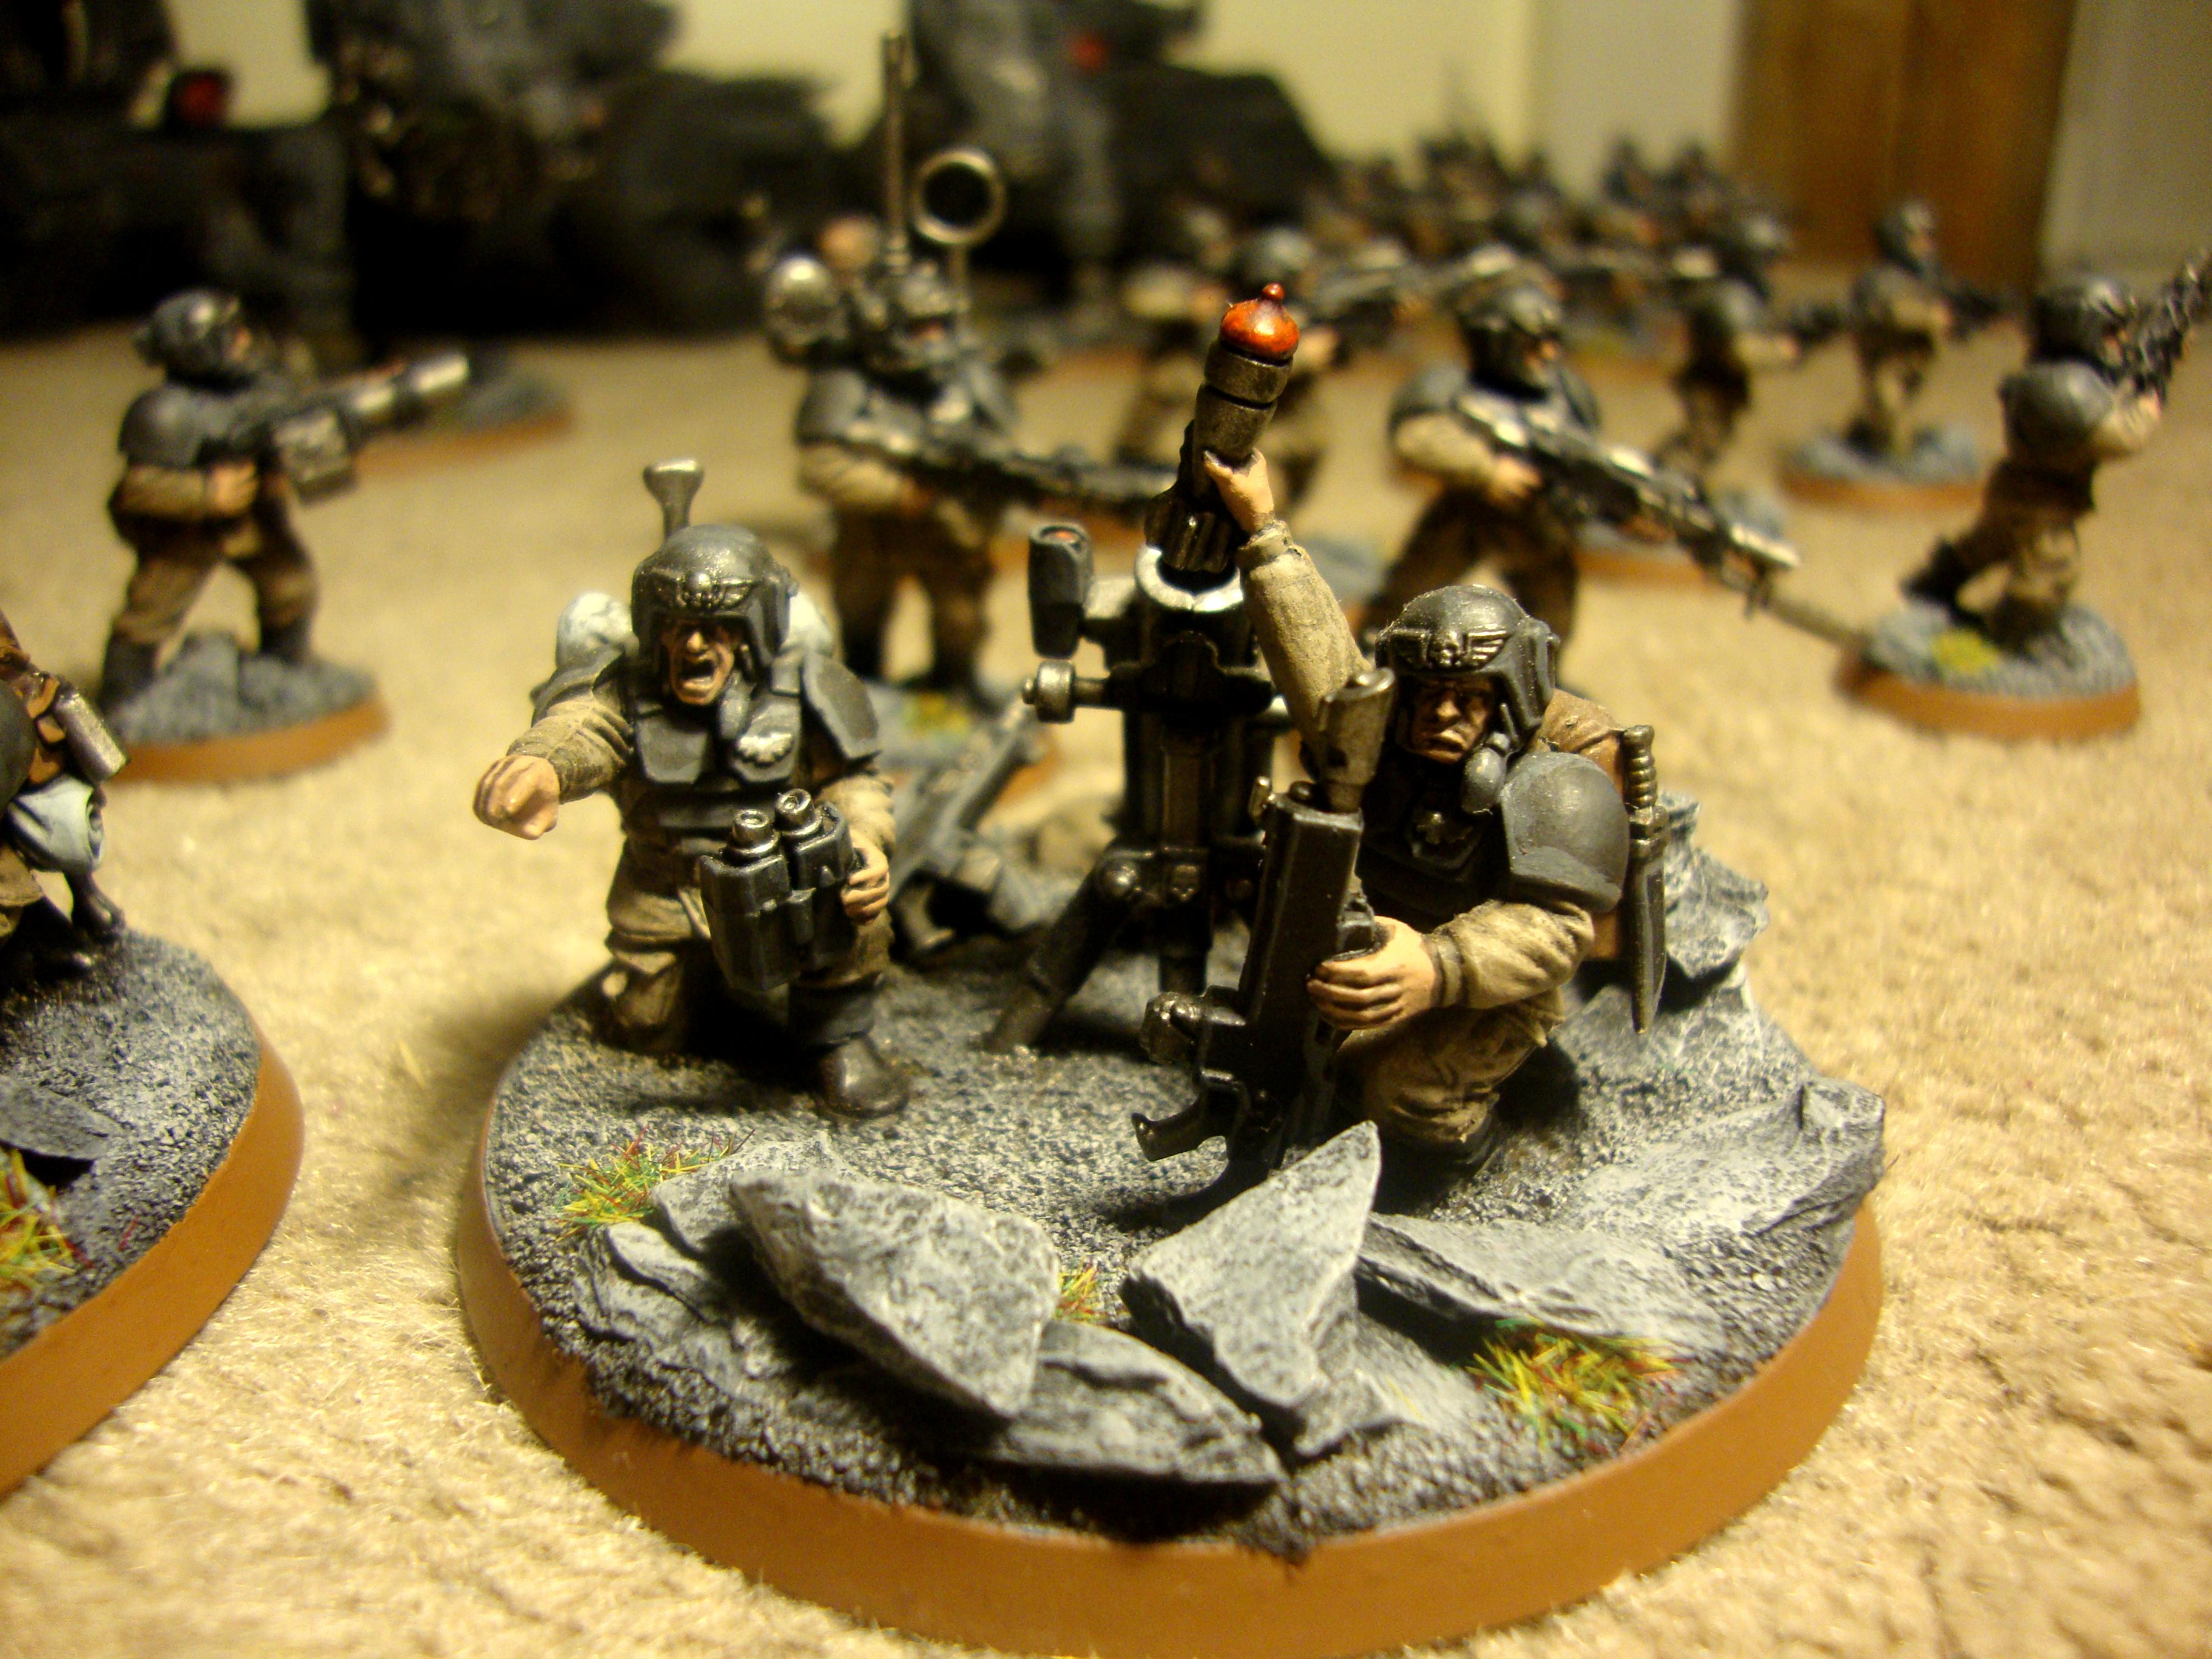 Astra Militarum, Autocannon, Basilisk, Chimera, Commander, Company Command Squad, Griffon, Guardsmen, Heavy Weapon Team, Heavy Weapons Team, Hive City, Imperial Guard, Imperial Guard., Lasguns, Leman Russ, Marbo, Missile Launcher, Mortar, Officer, Platoon, Seargant, Sentinel, Tank, Valkyrie, Veteran, Warhammer 40,000